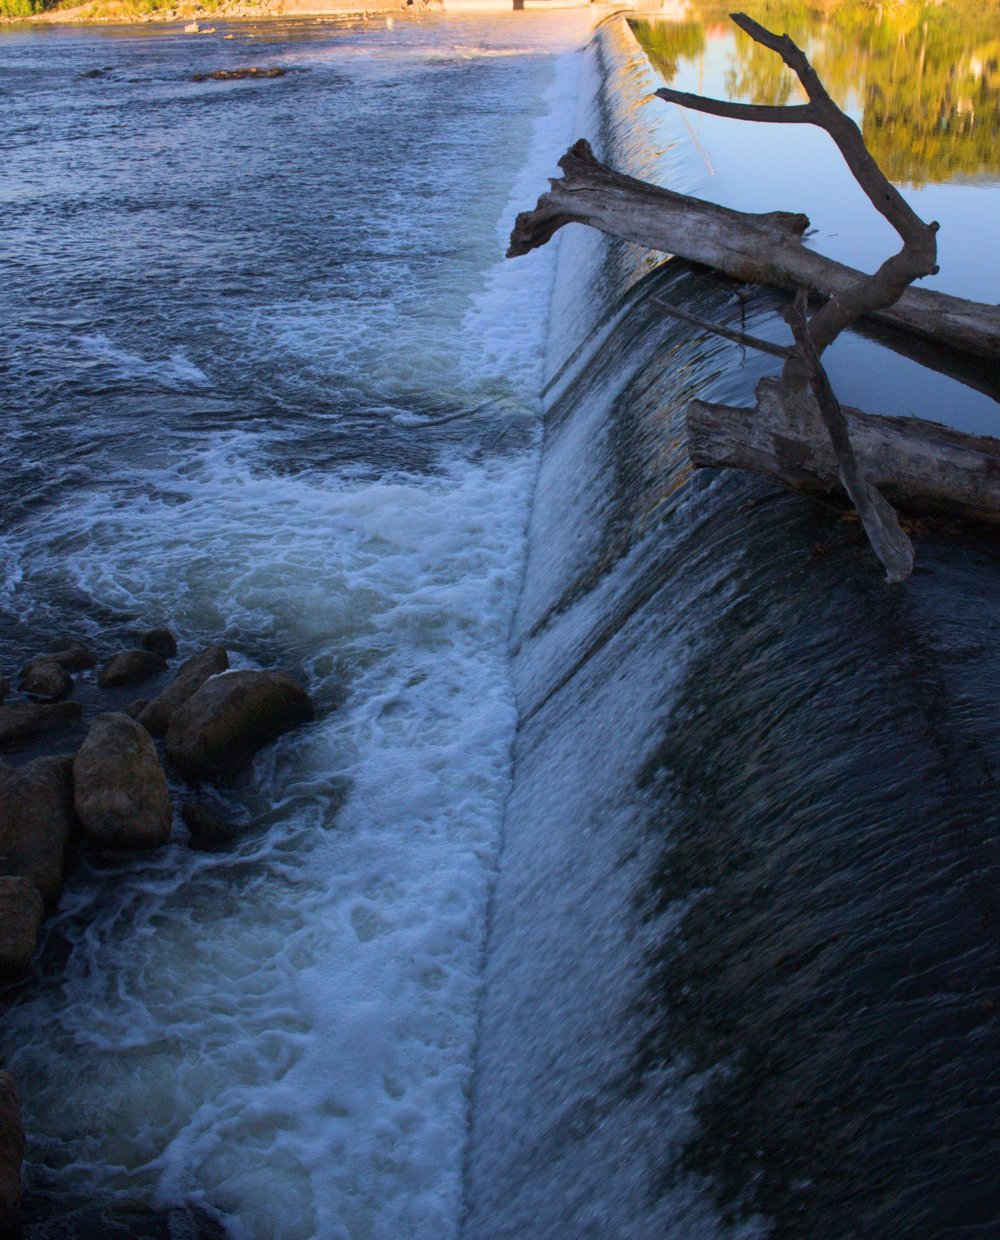 Logs and other refuse are regularly seen stuck on top the dam, or tossing and spinning in the whitewater below.